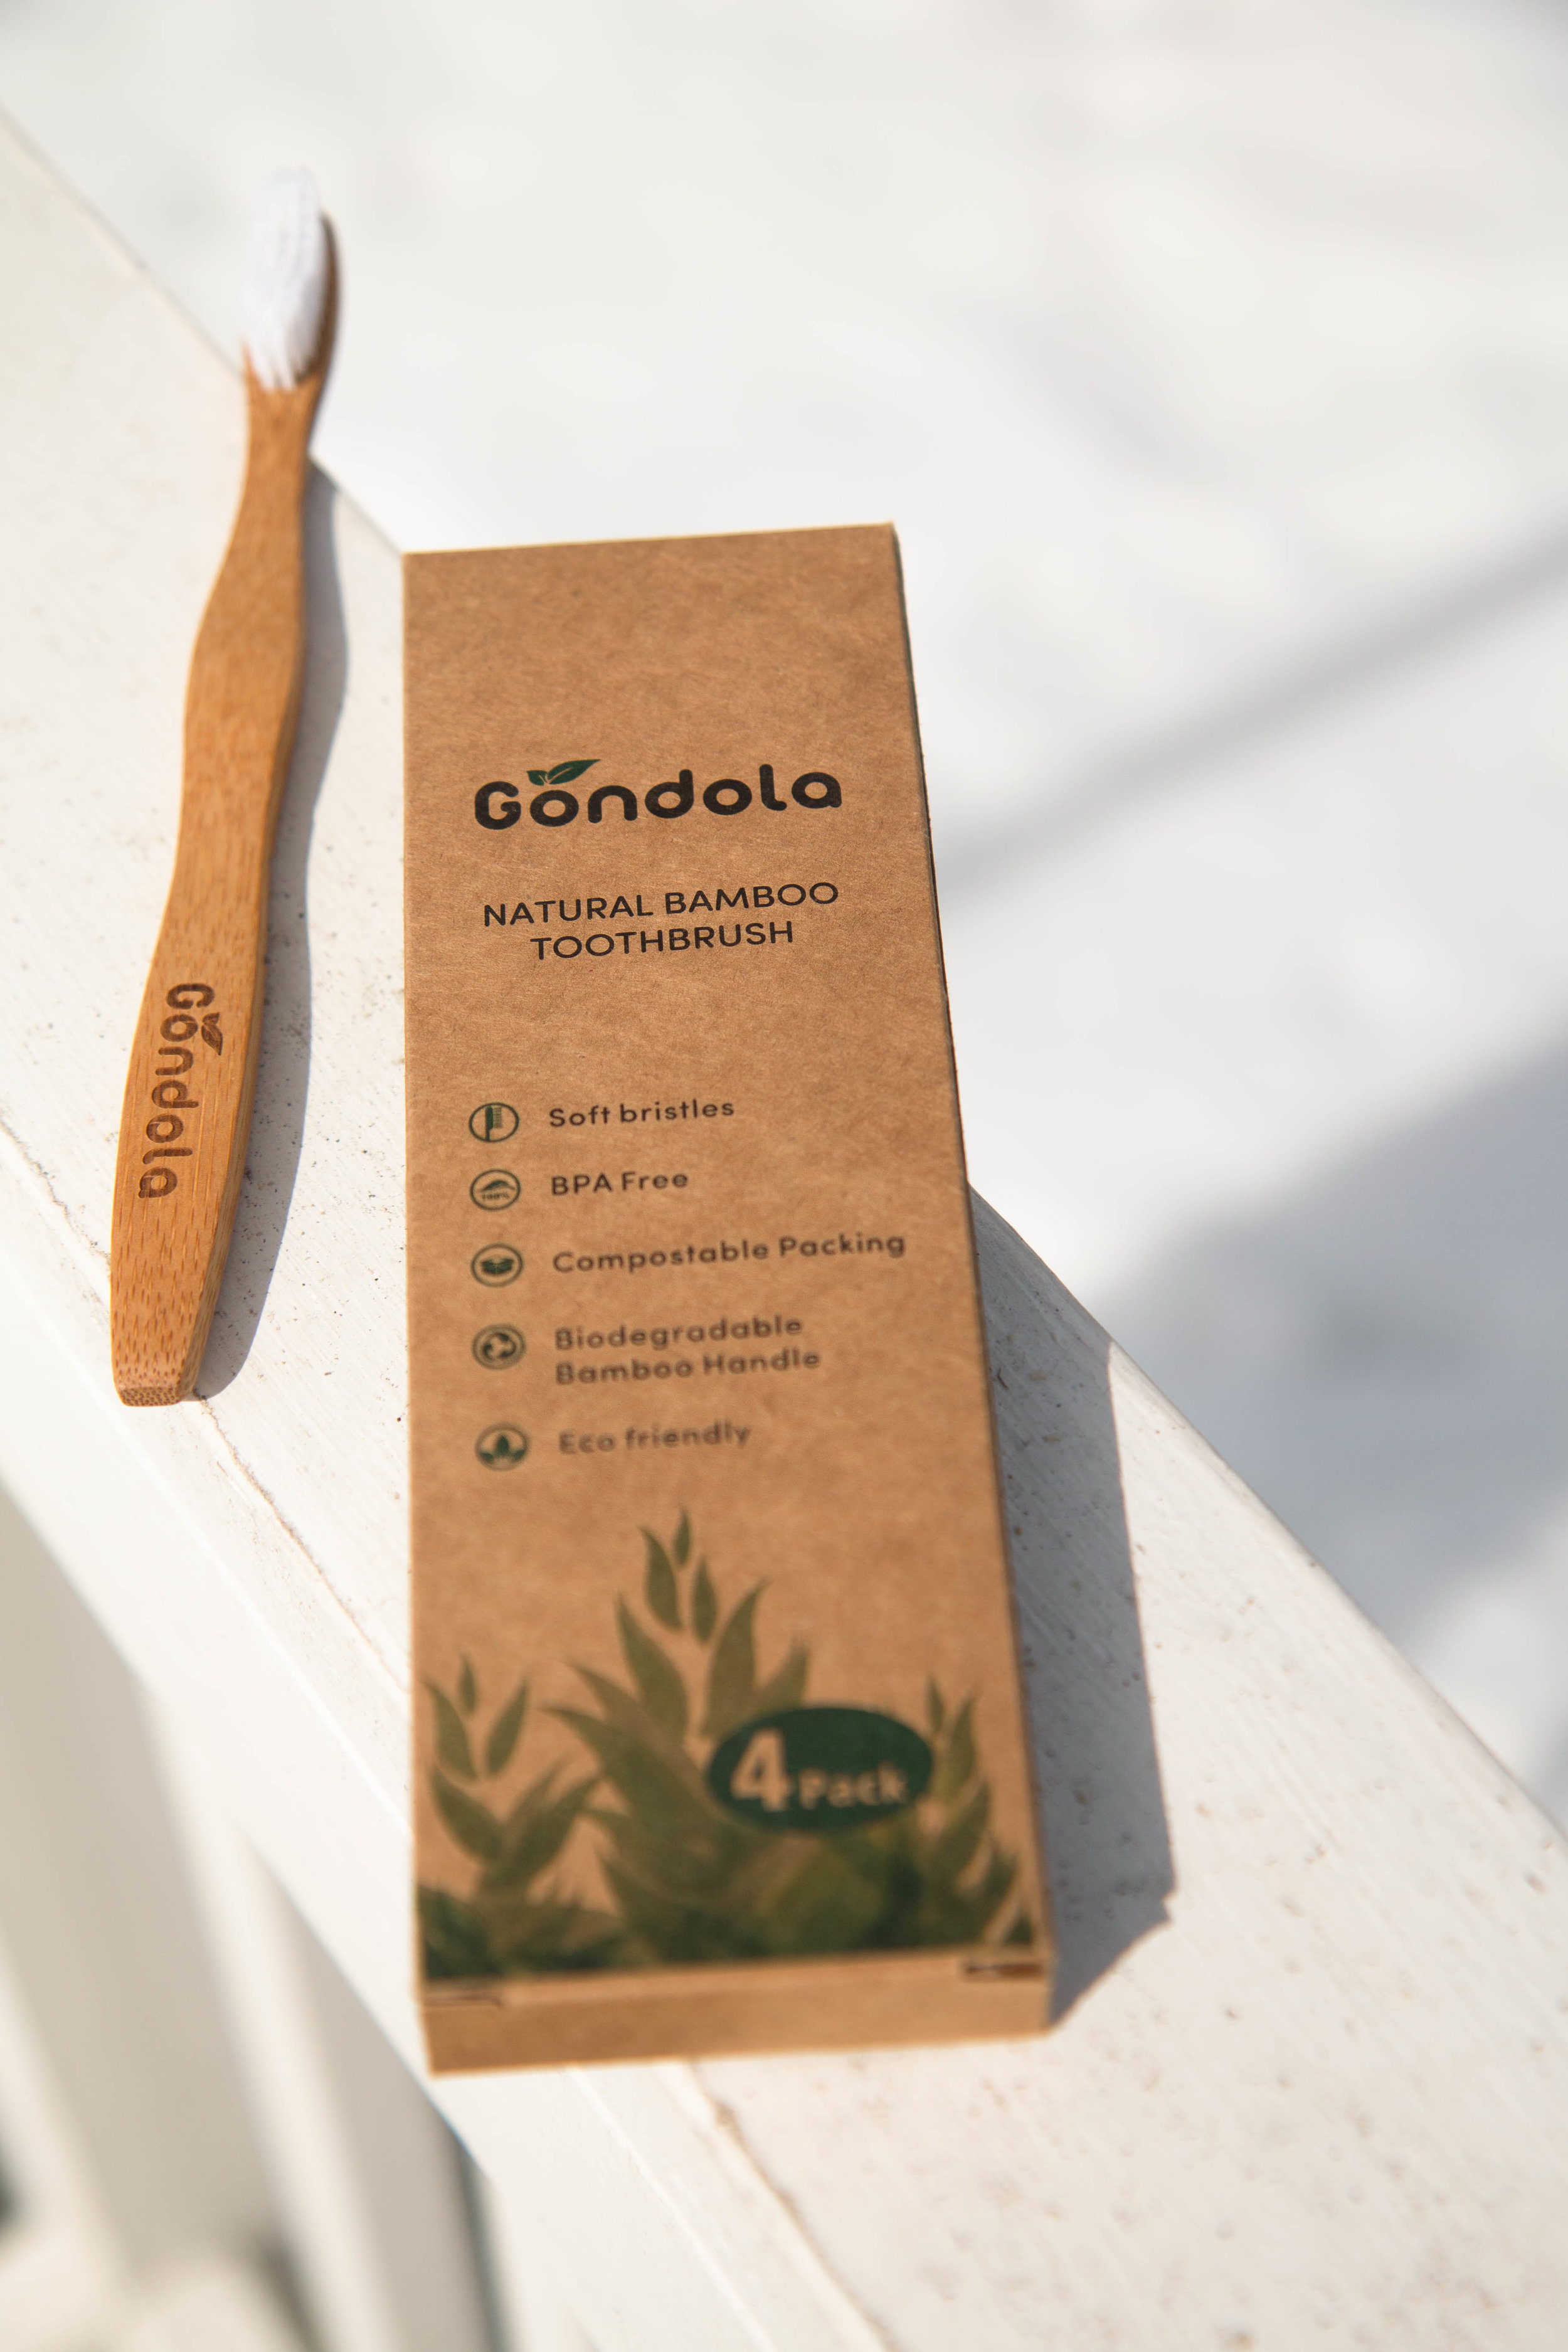 Gondola bamboo toothbrush. 100% biodegradable and eco-friendly. A must have for those going plastic free and zero waste